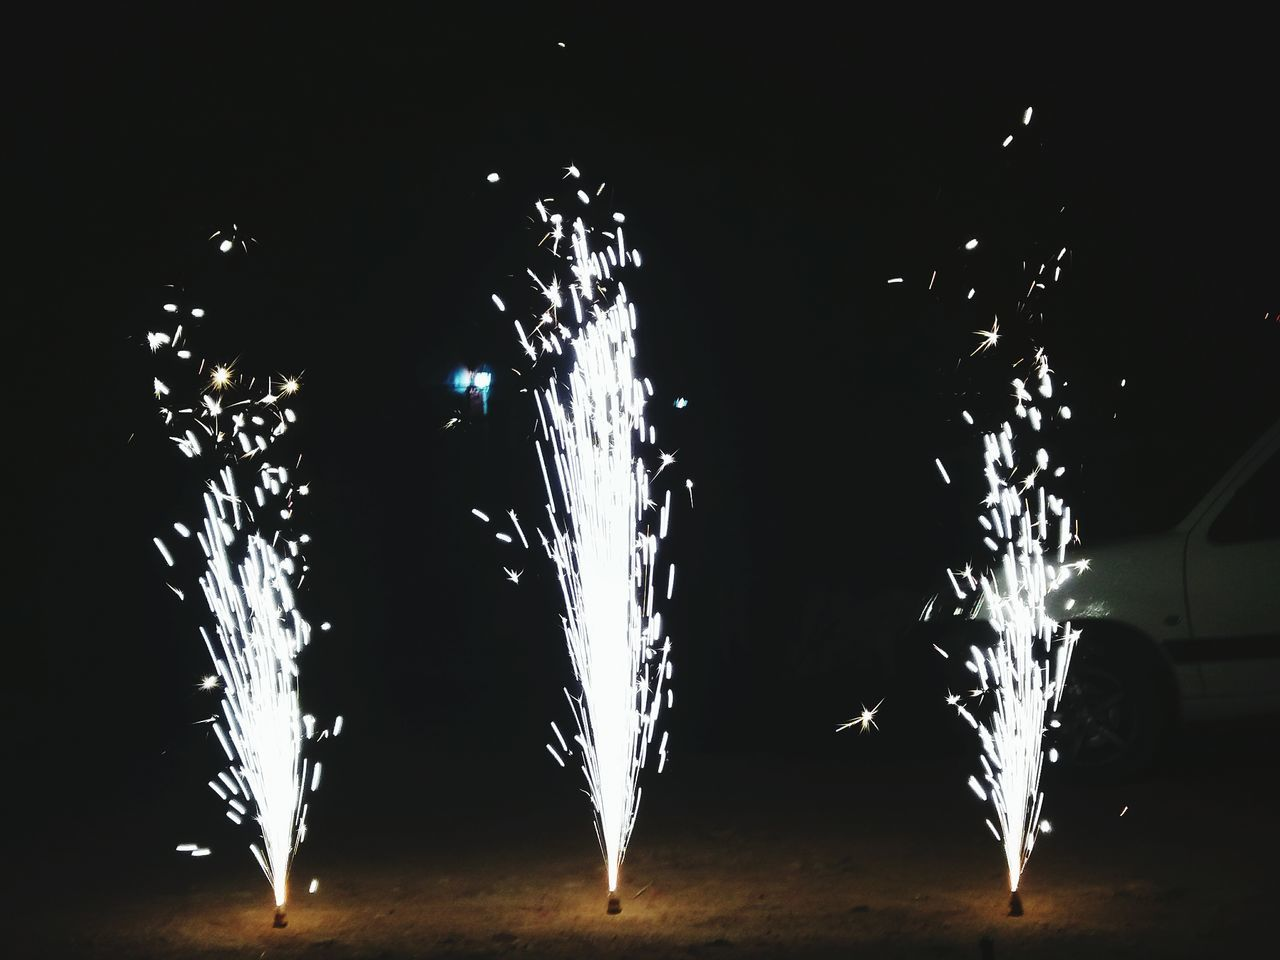 night, long exposure, no people, motion, blurred motion, illuminated, firework - man made object, close-up, outdoors, nature